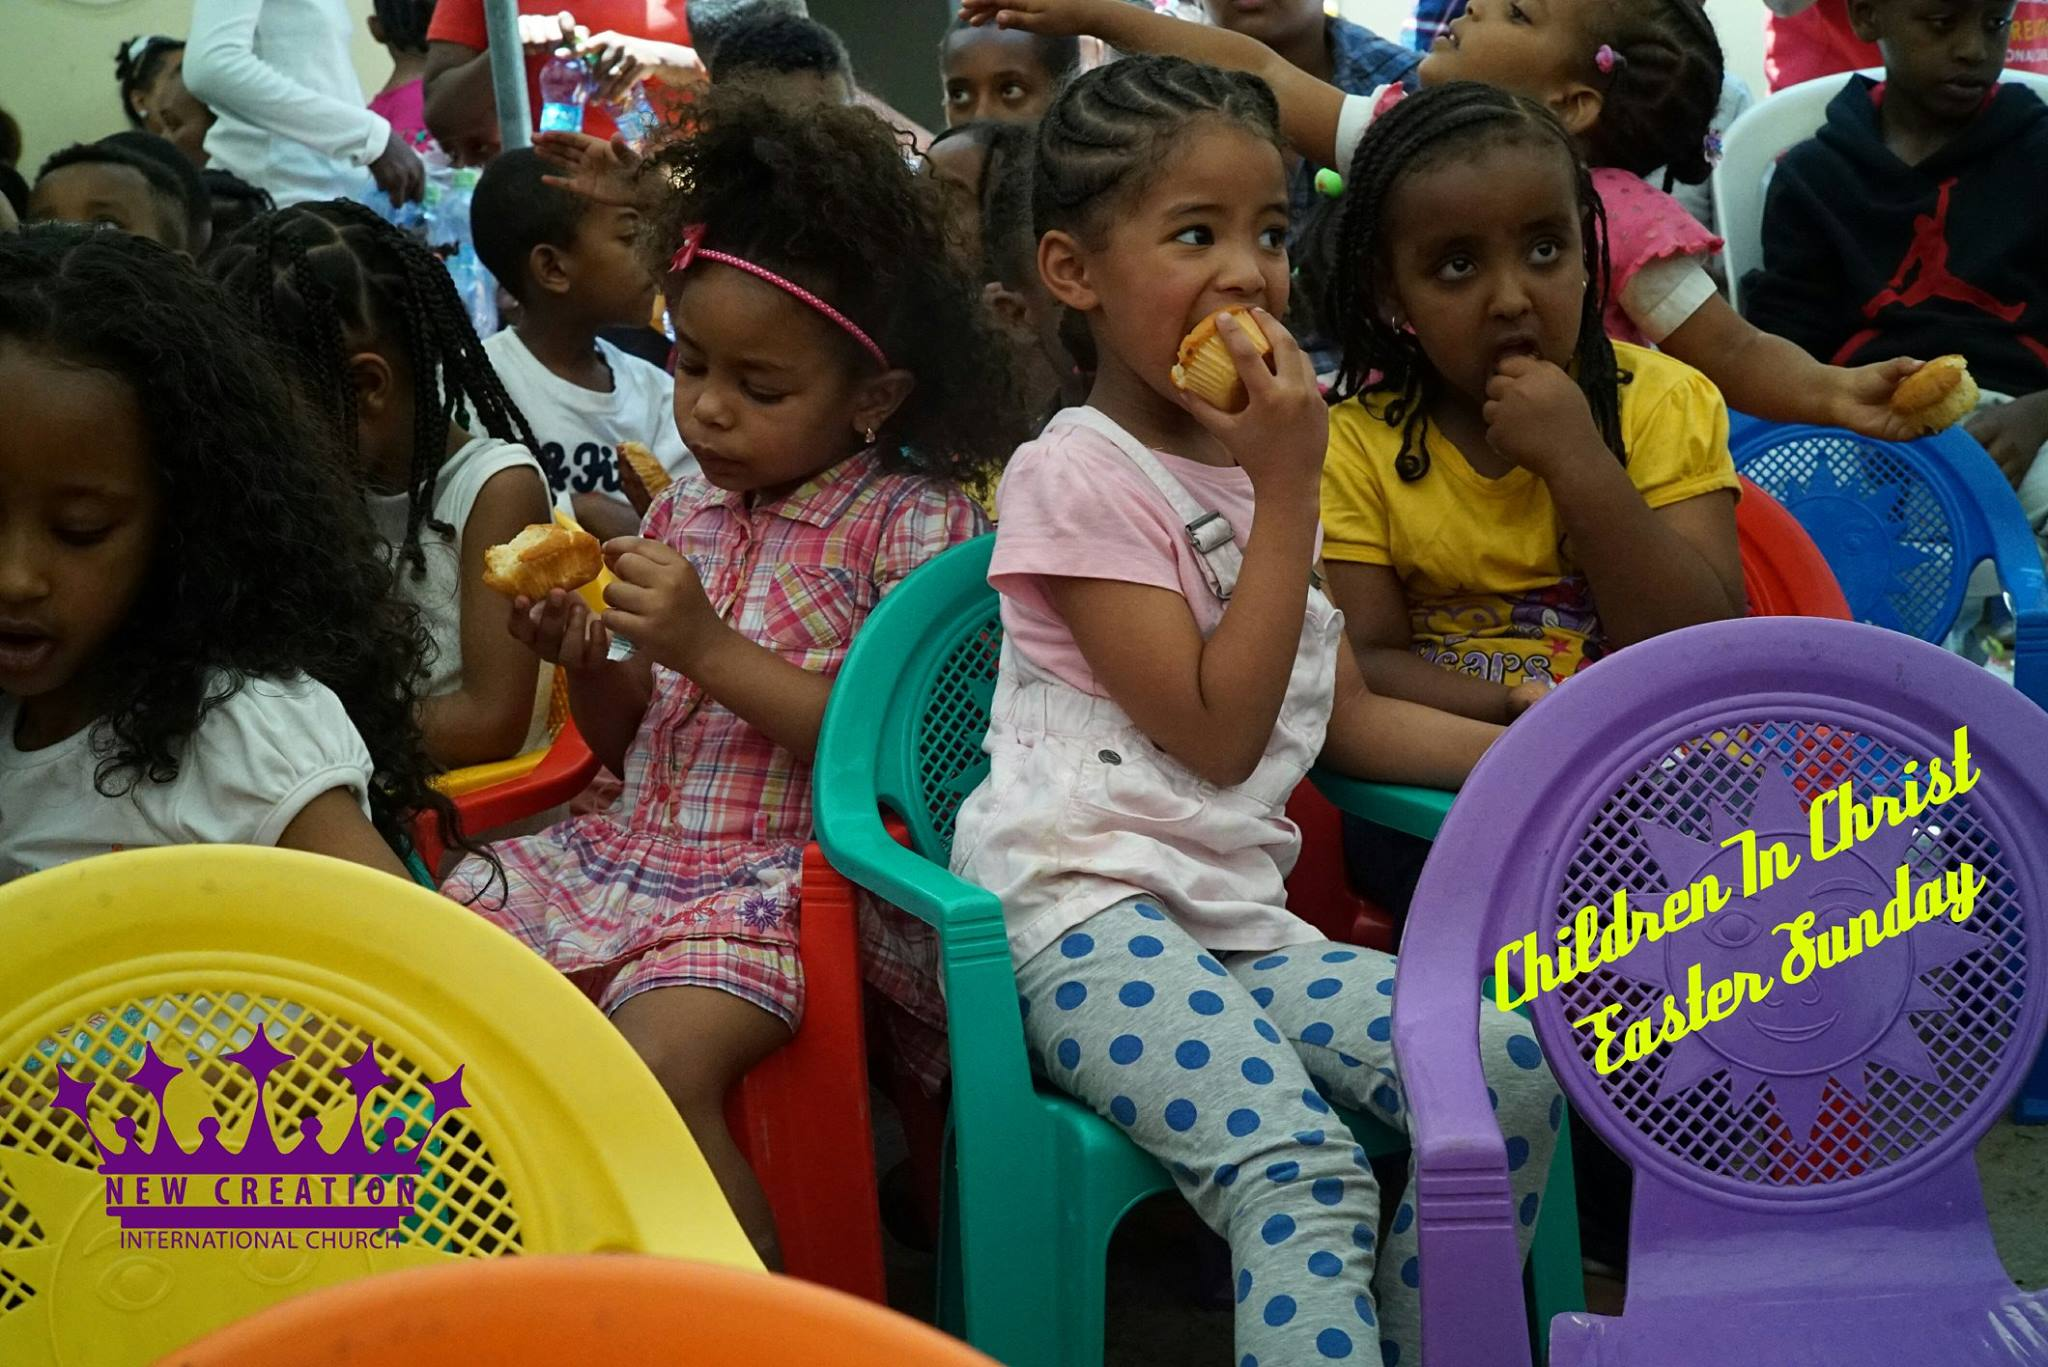 New Creation church Ethiopia Children Ministry Easter Celebration (7)